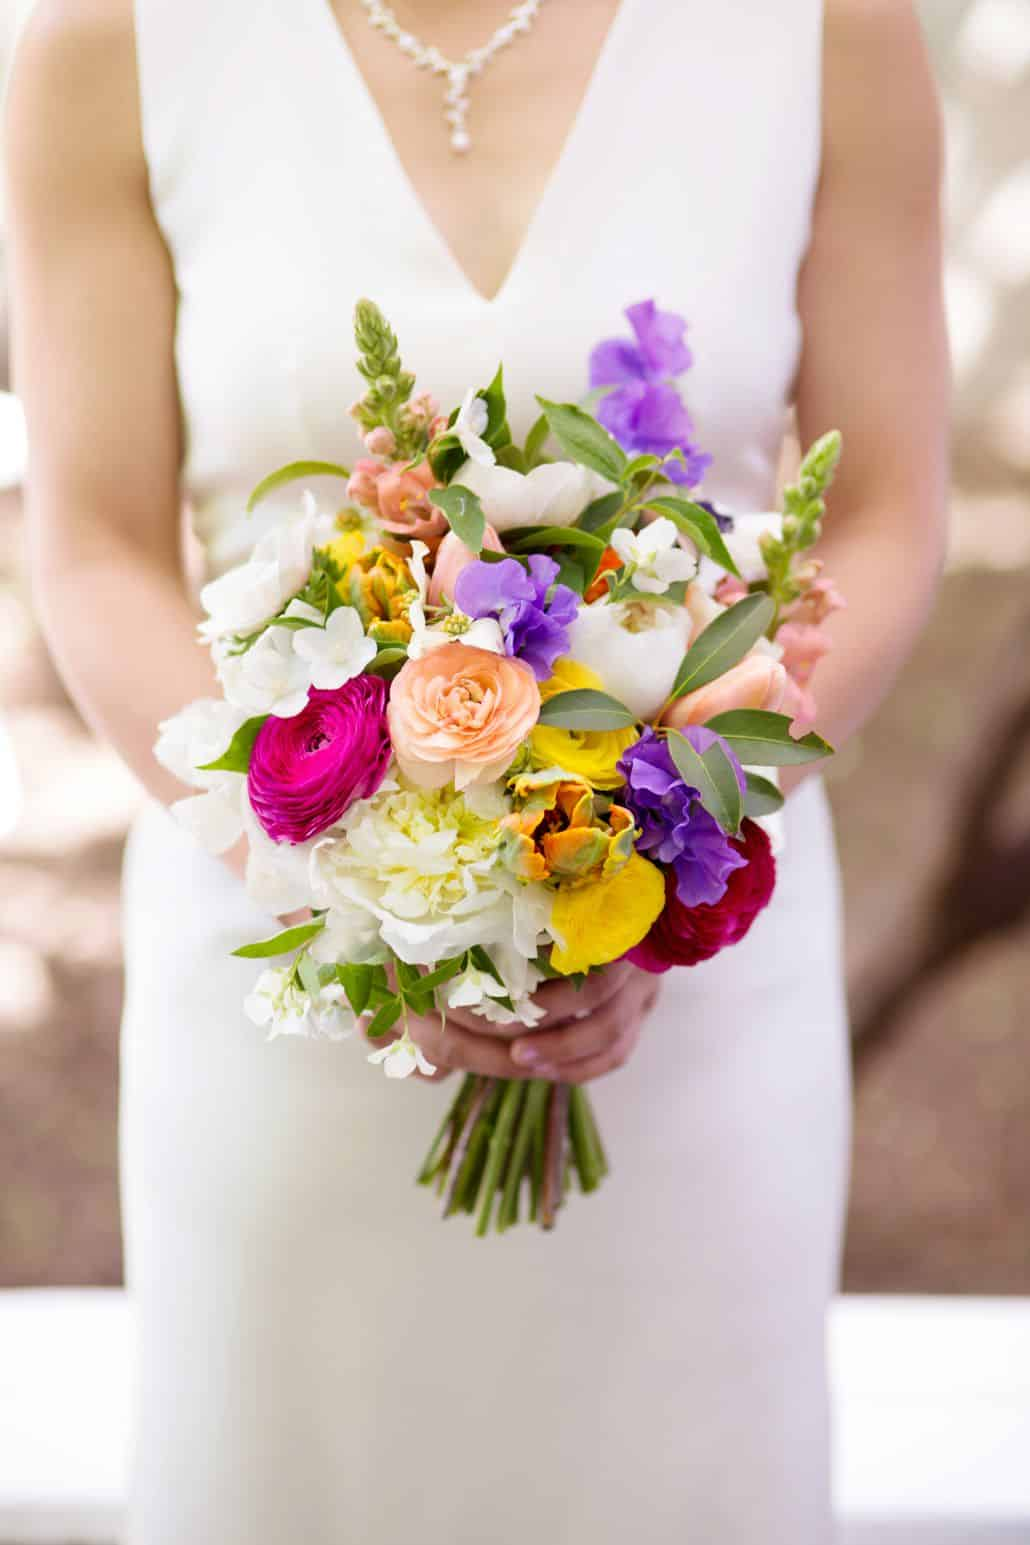 Bride Holds Colorful Mixed Bouquet Of Purple Pink Fuscia Yellow And White Flowers